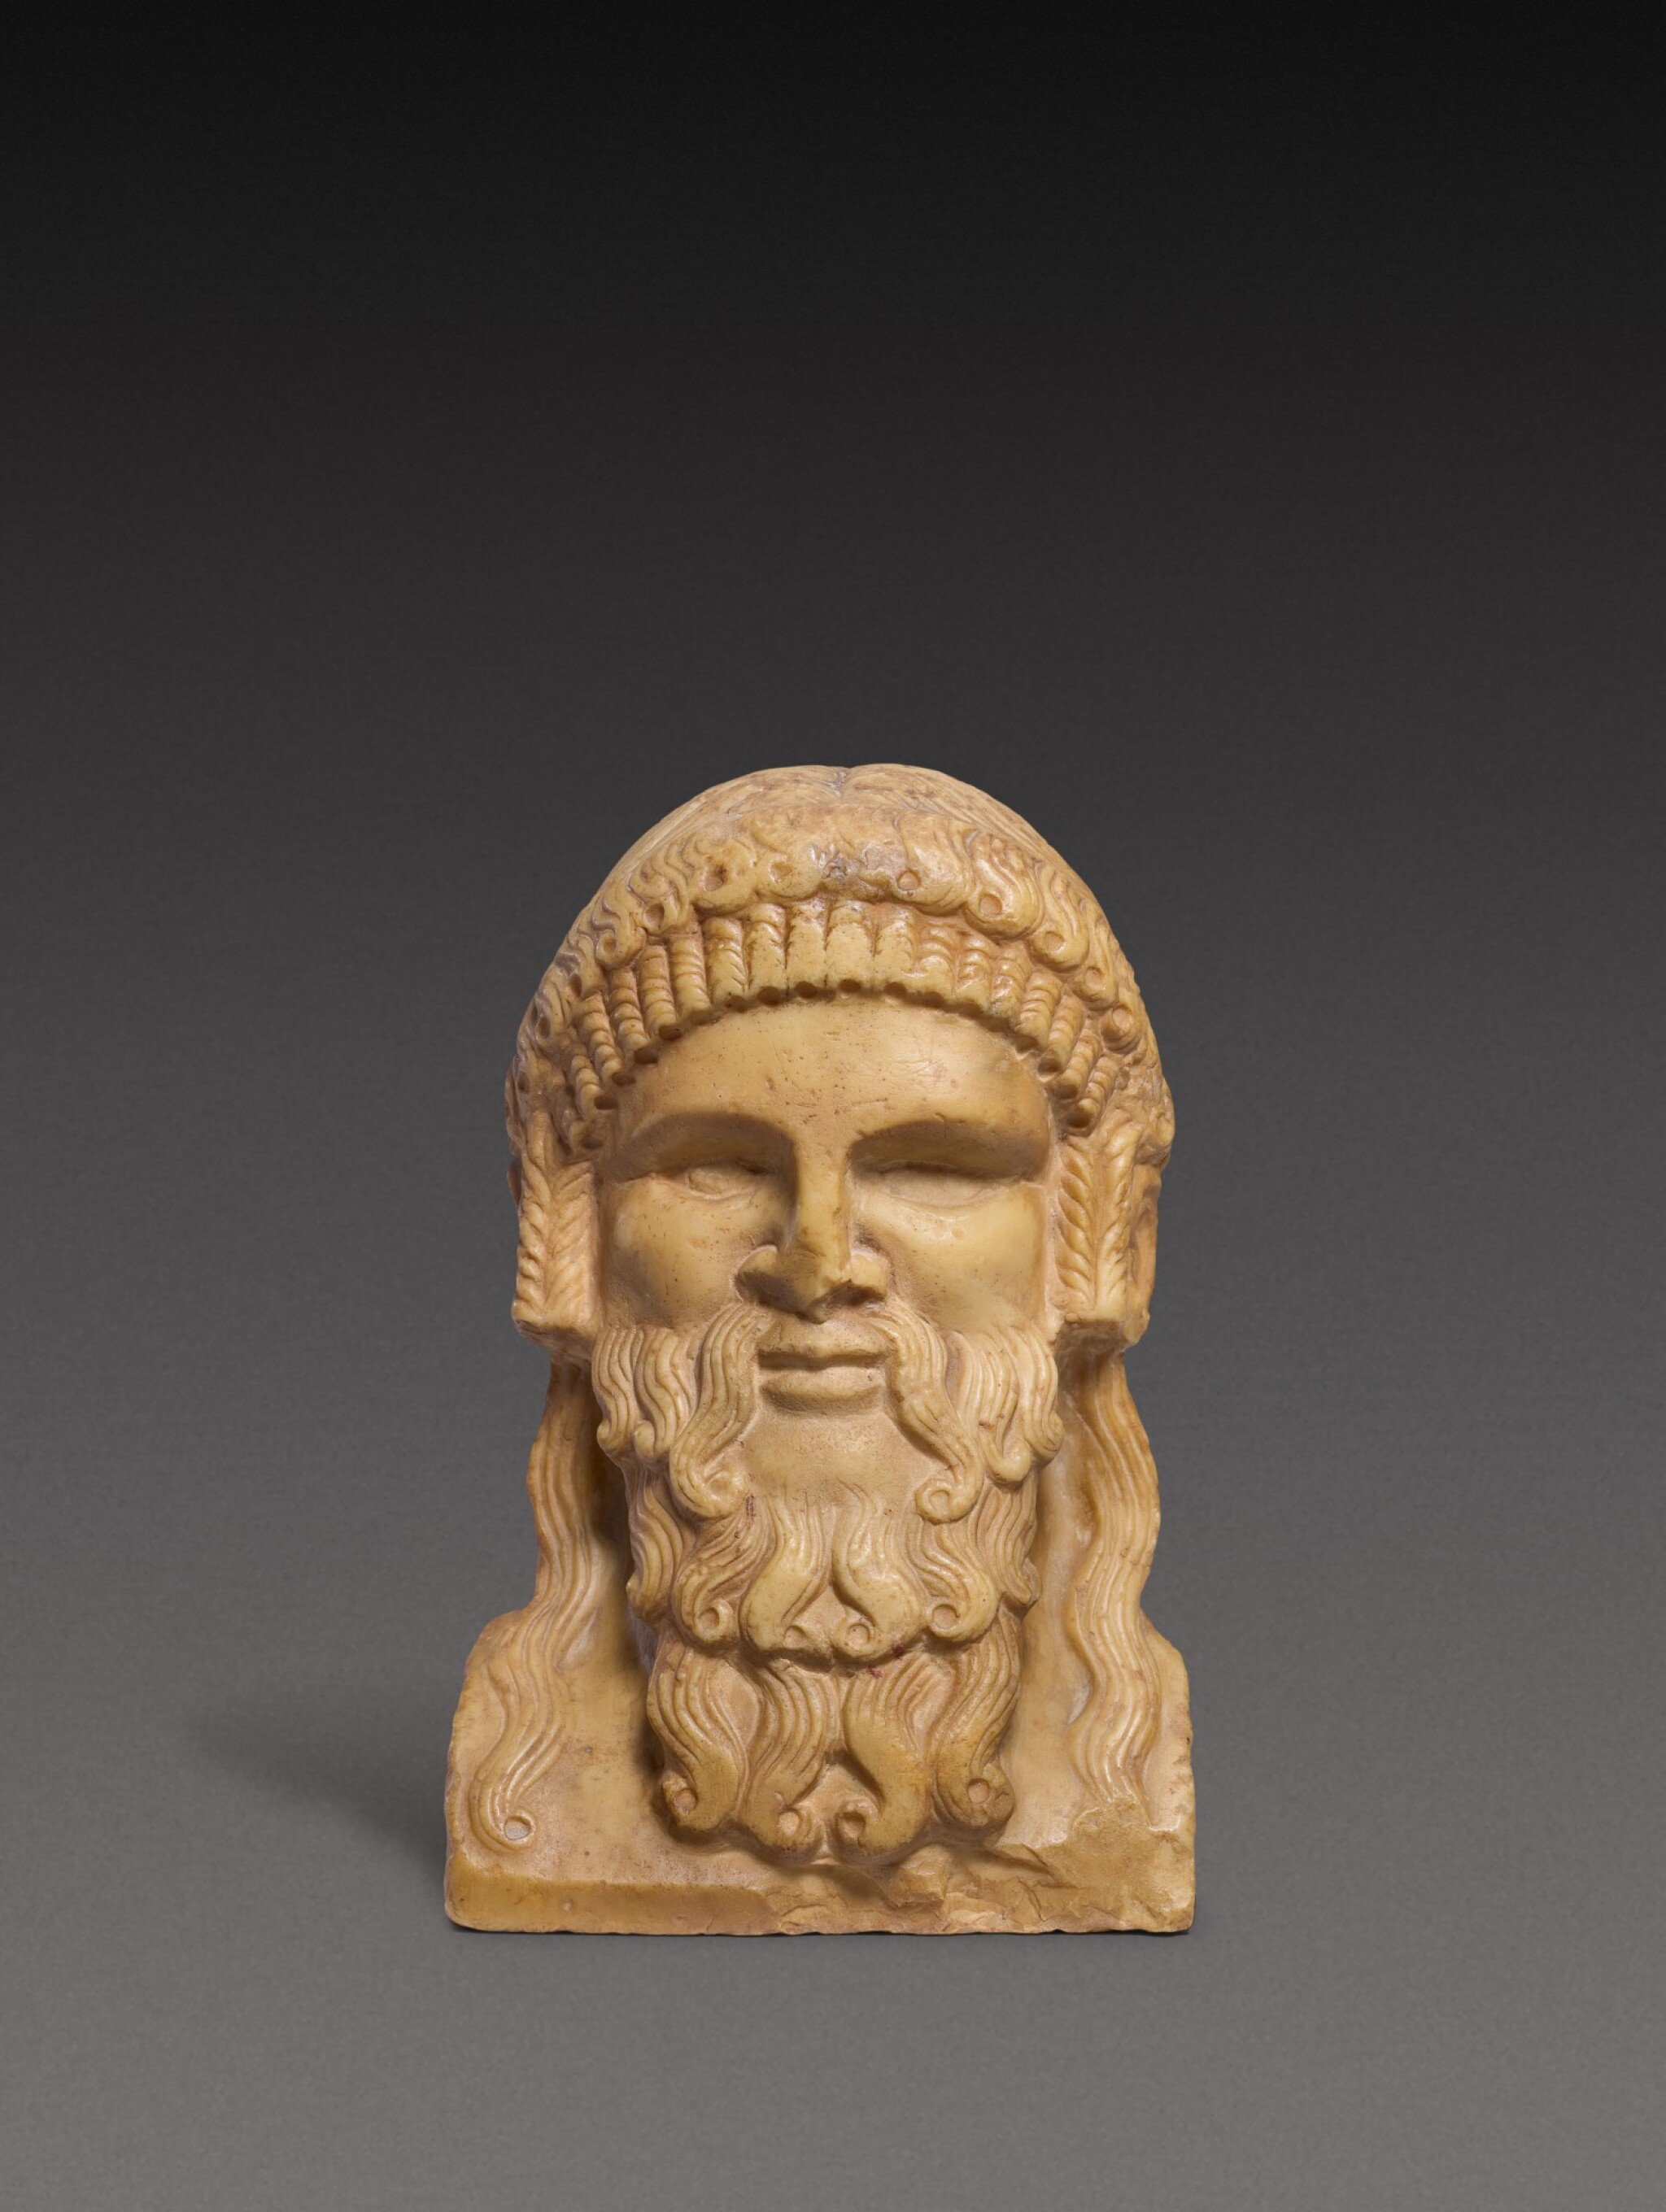 View 1 of Lot 98. A Roman Giallo Antico Marble Herm Bust of Dionysos, circa 2nd Century A.D..